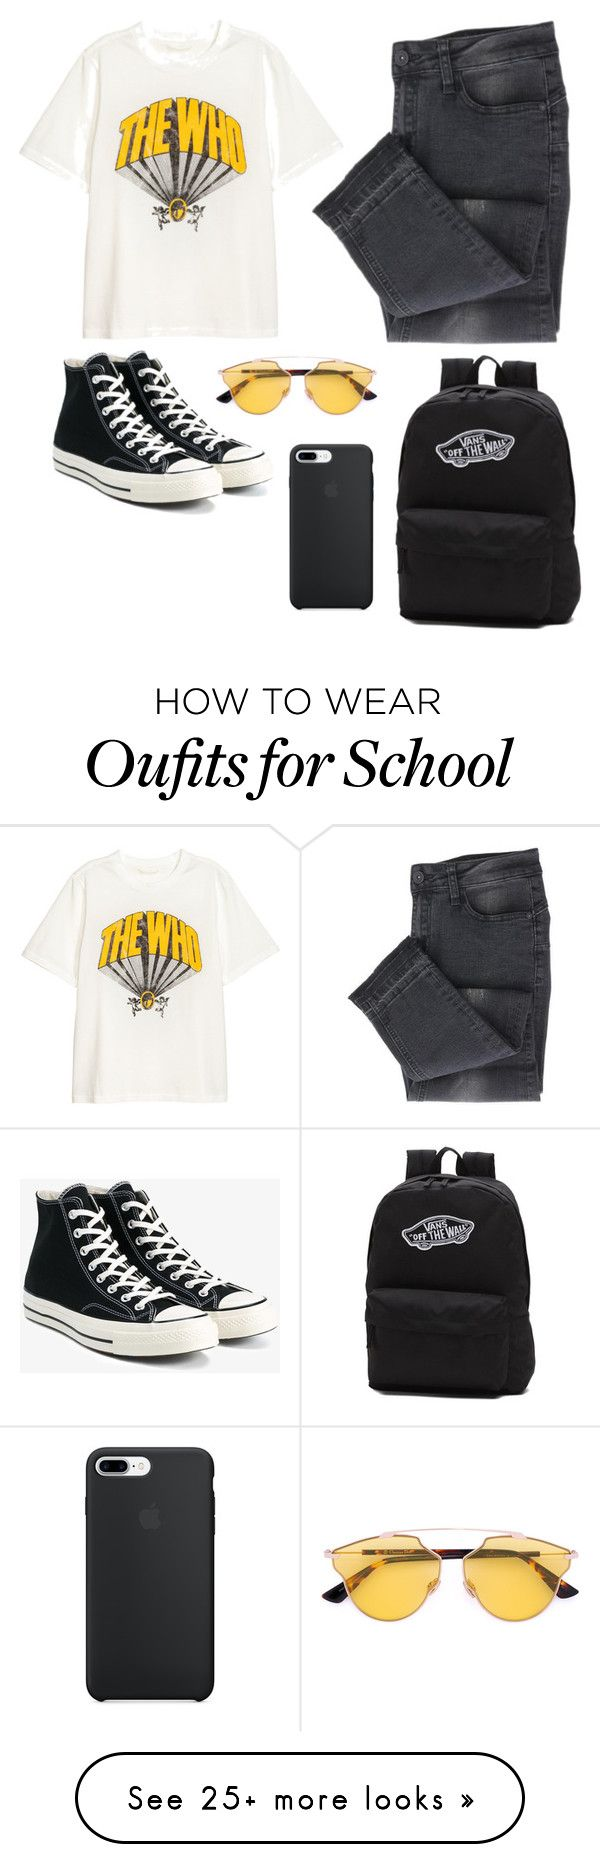 """""""School"""" by kpescobar on Polyvore featuring Converse, Vans and Christian Dior"""